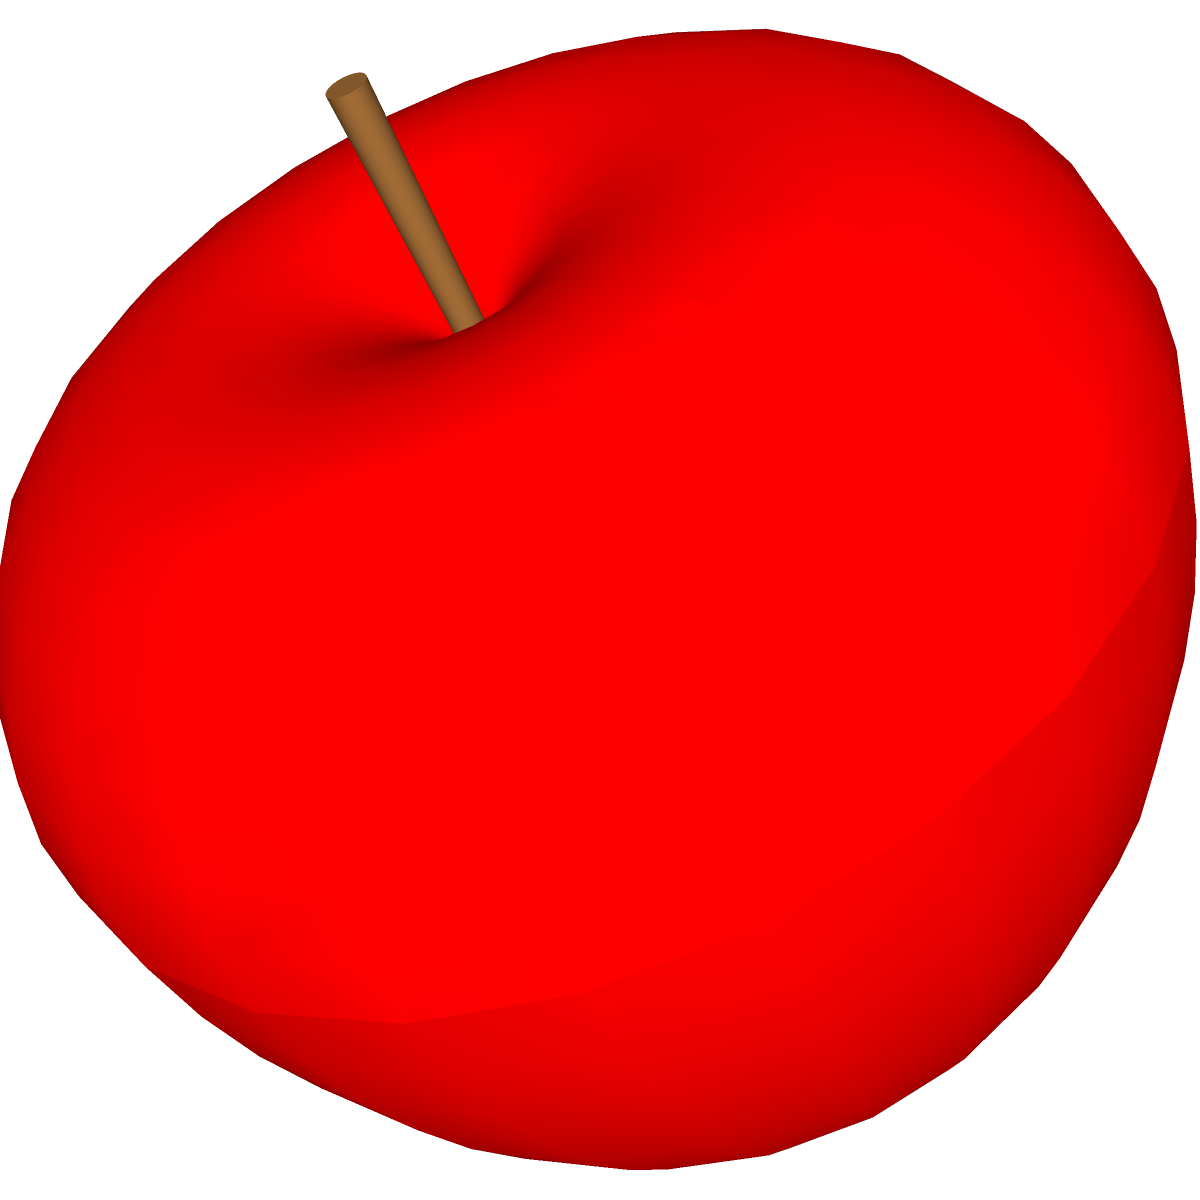 Red Apple Clip Art - Clipart library